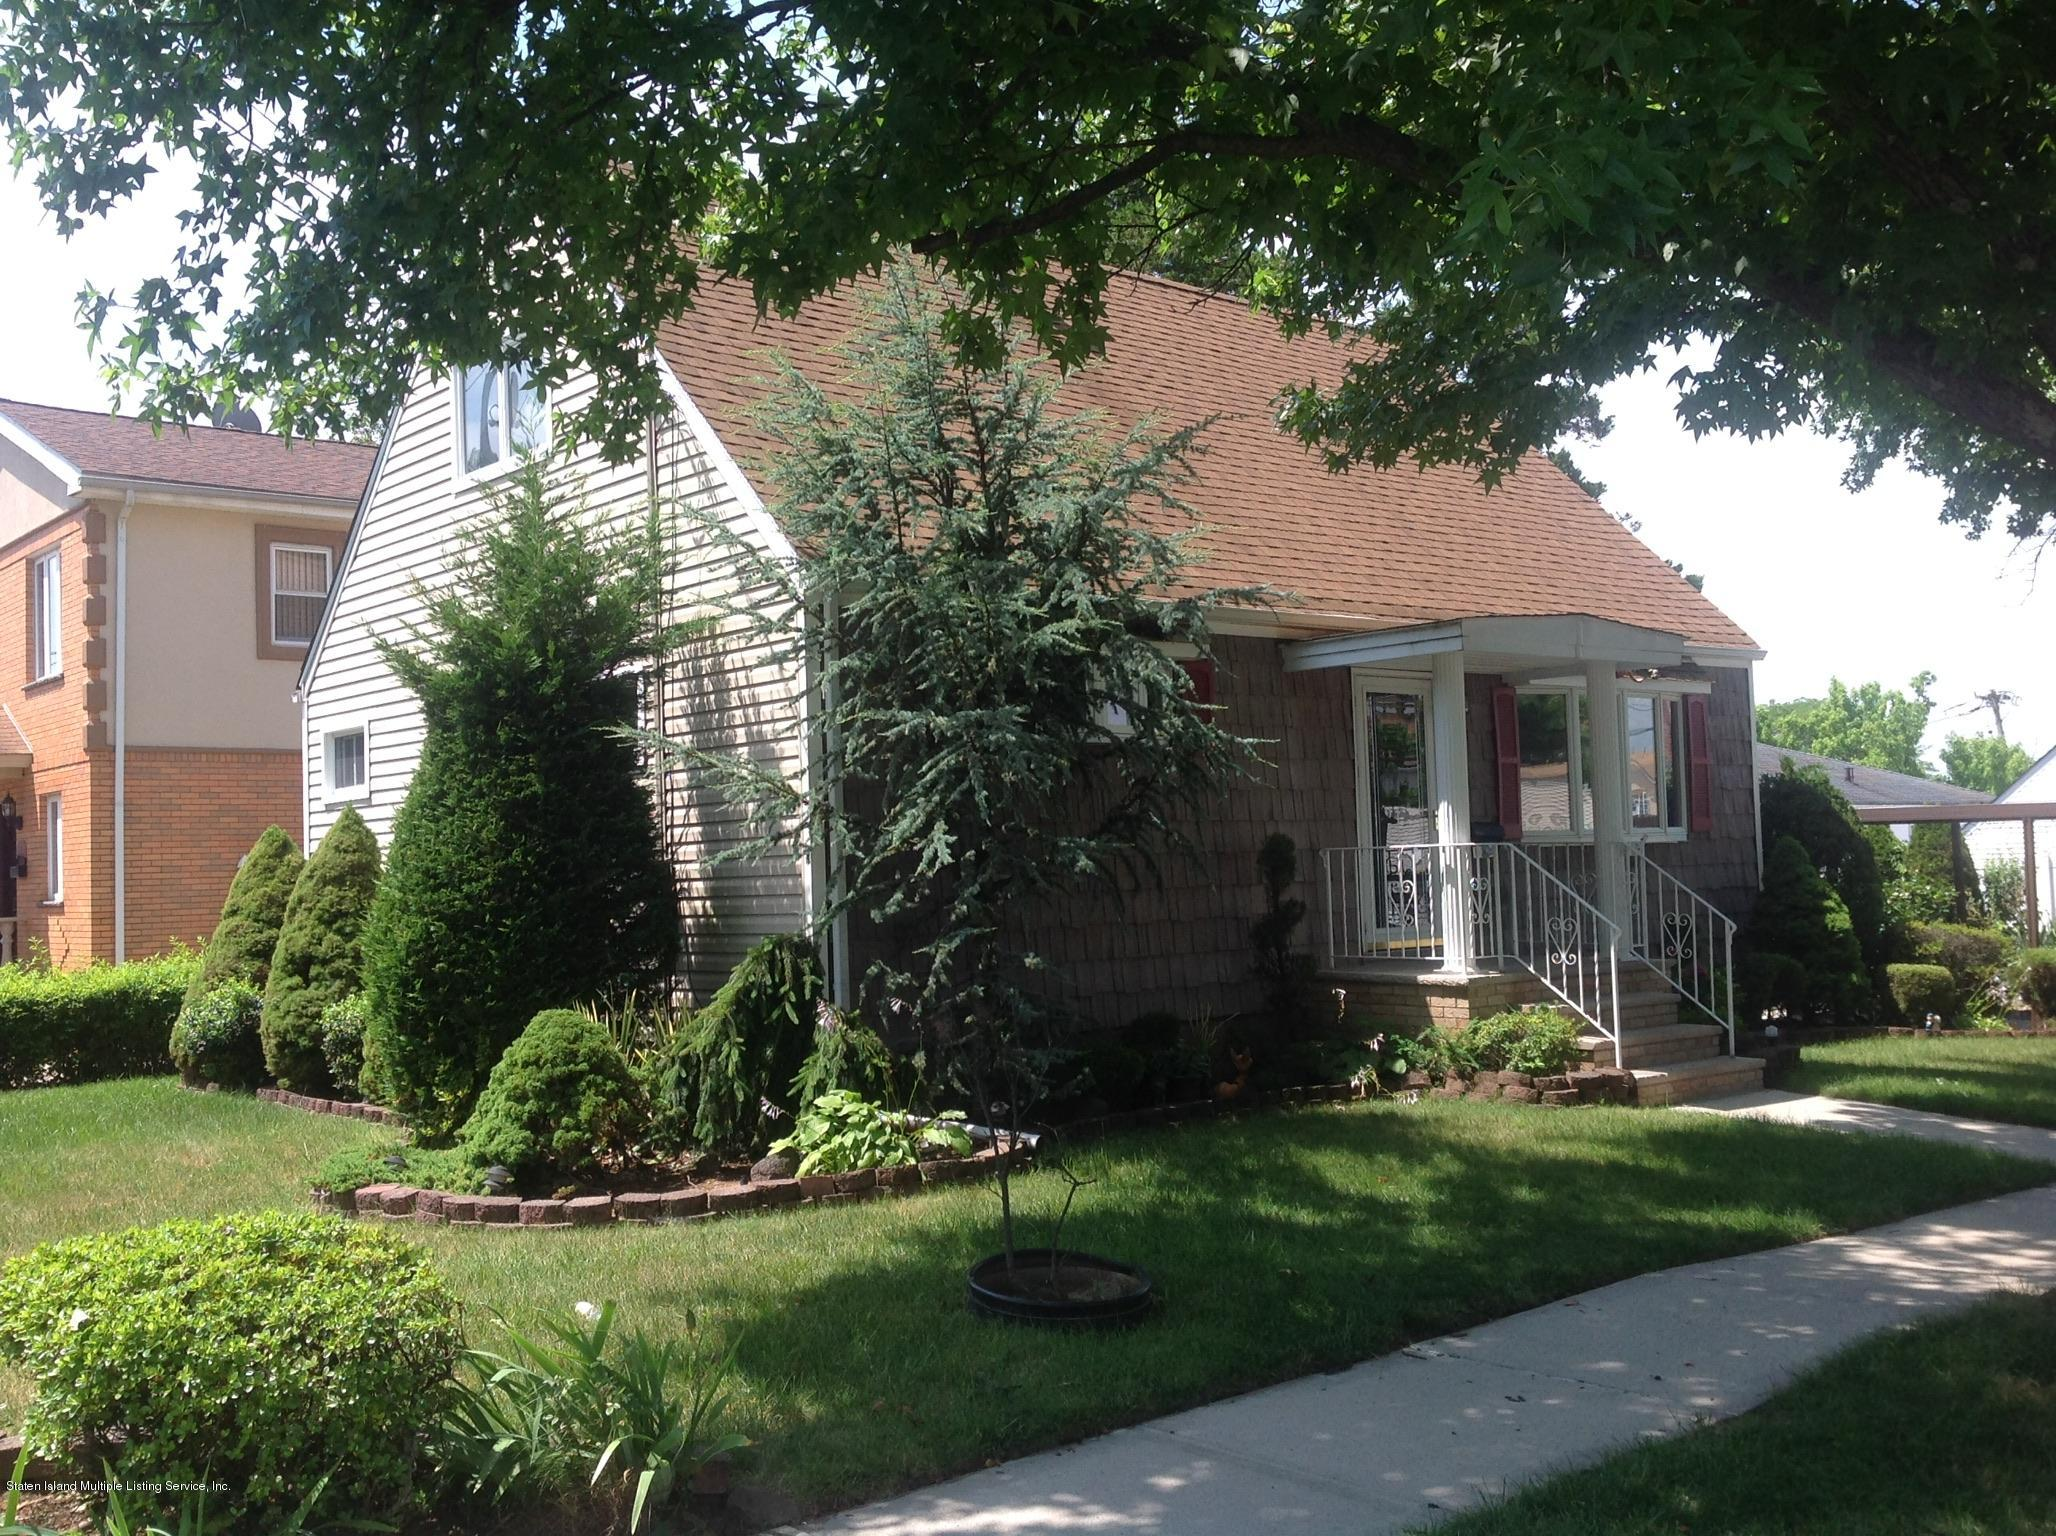 Single Family - Detached 28 Queen Street  Staten Island, NY 10314, MLS-1148779-2